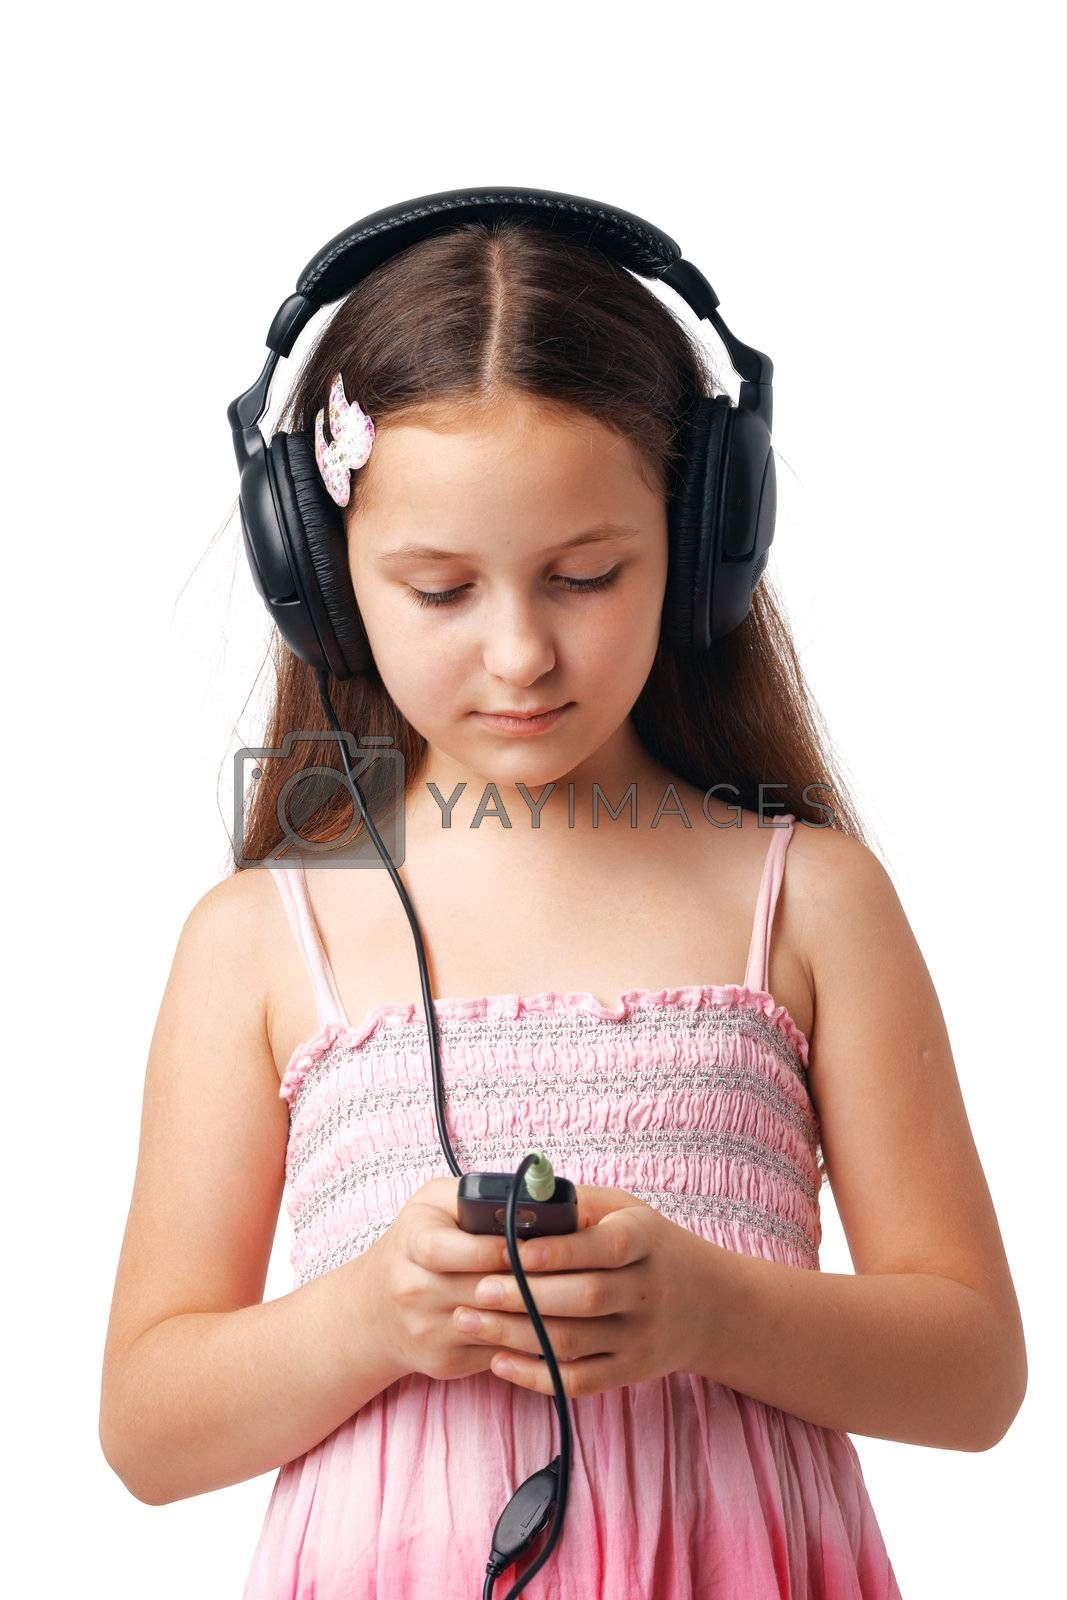 Young girl with headphones looking at something in her mobile or player.